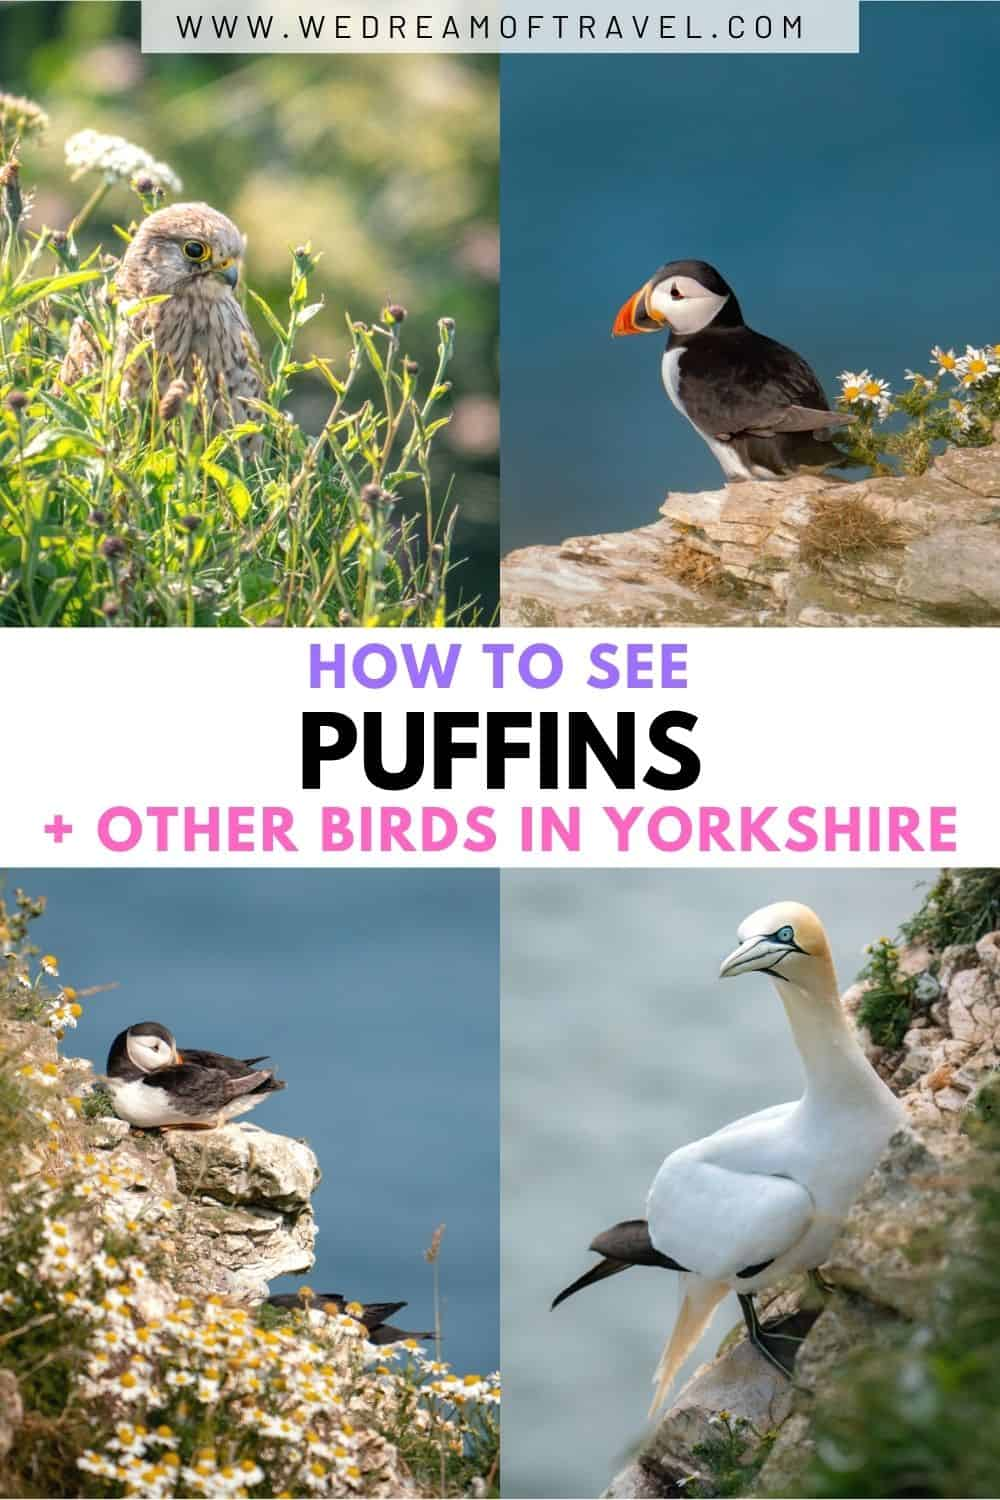 Each year puffins return to the British Isles to nest.  These iconic, charismatic birds are a pleasure to watch. Discover everything you need to know about seeing puffins in Yorkshire.